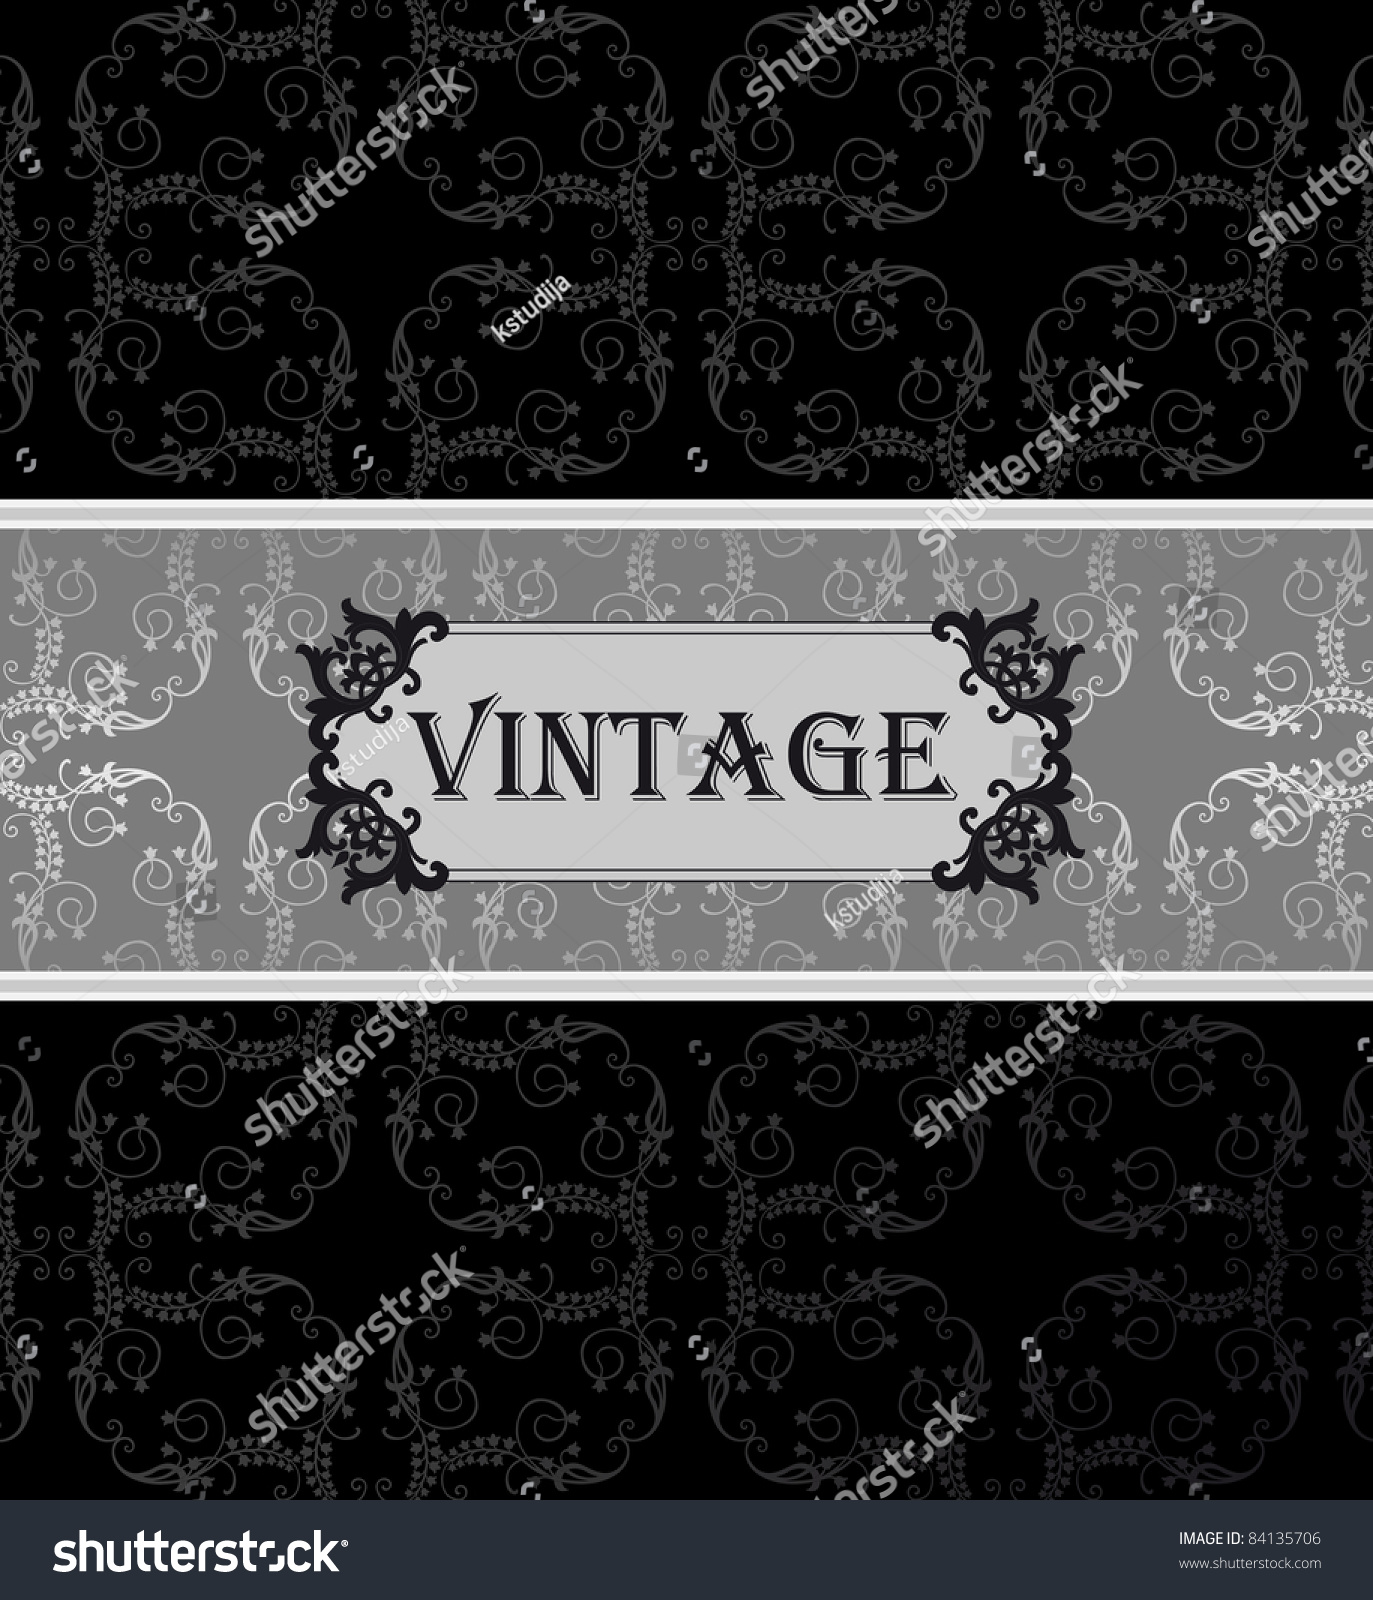 Vintage Book Cover Vector ~ Vintage vector background card book cover stock